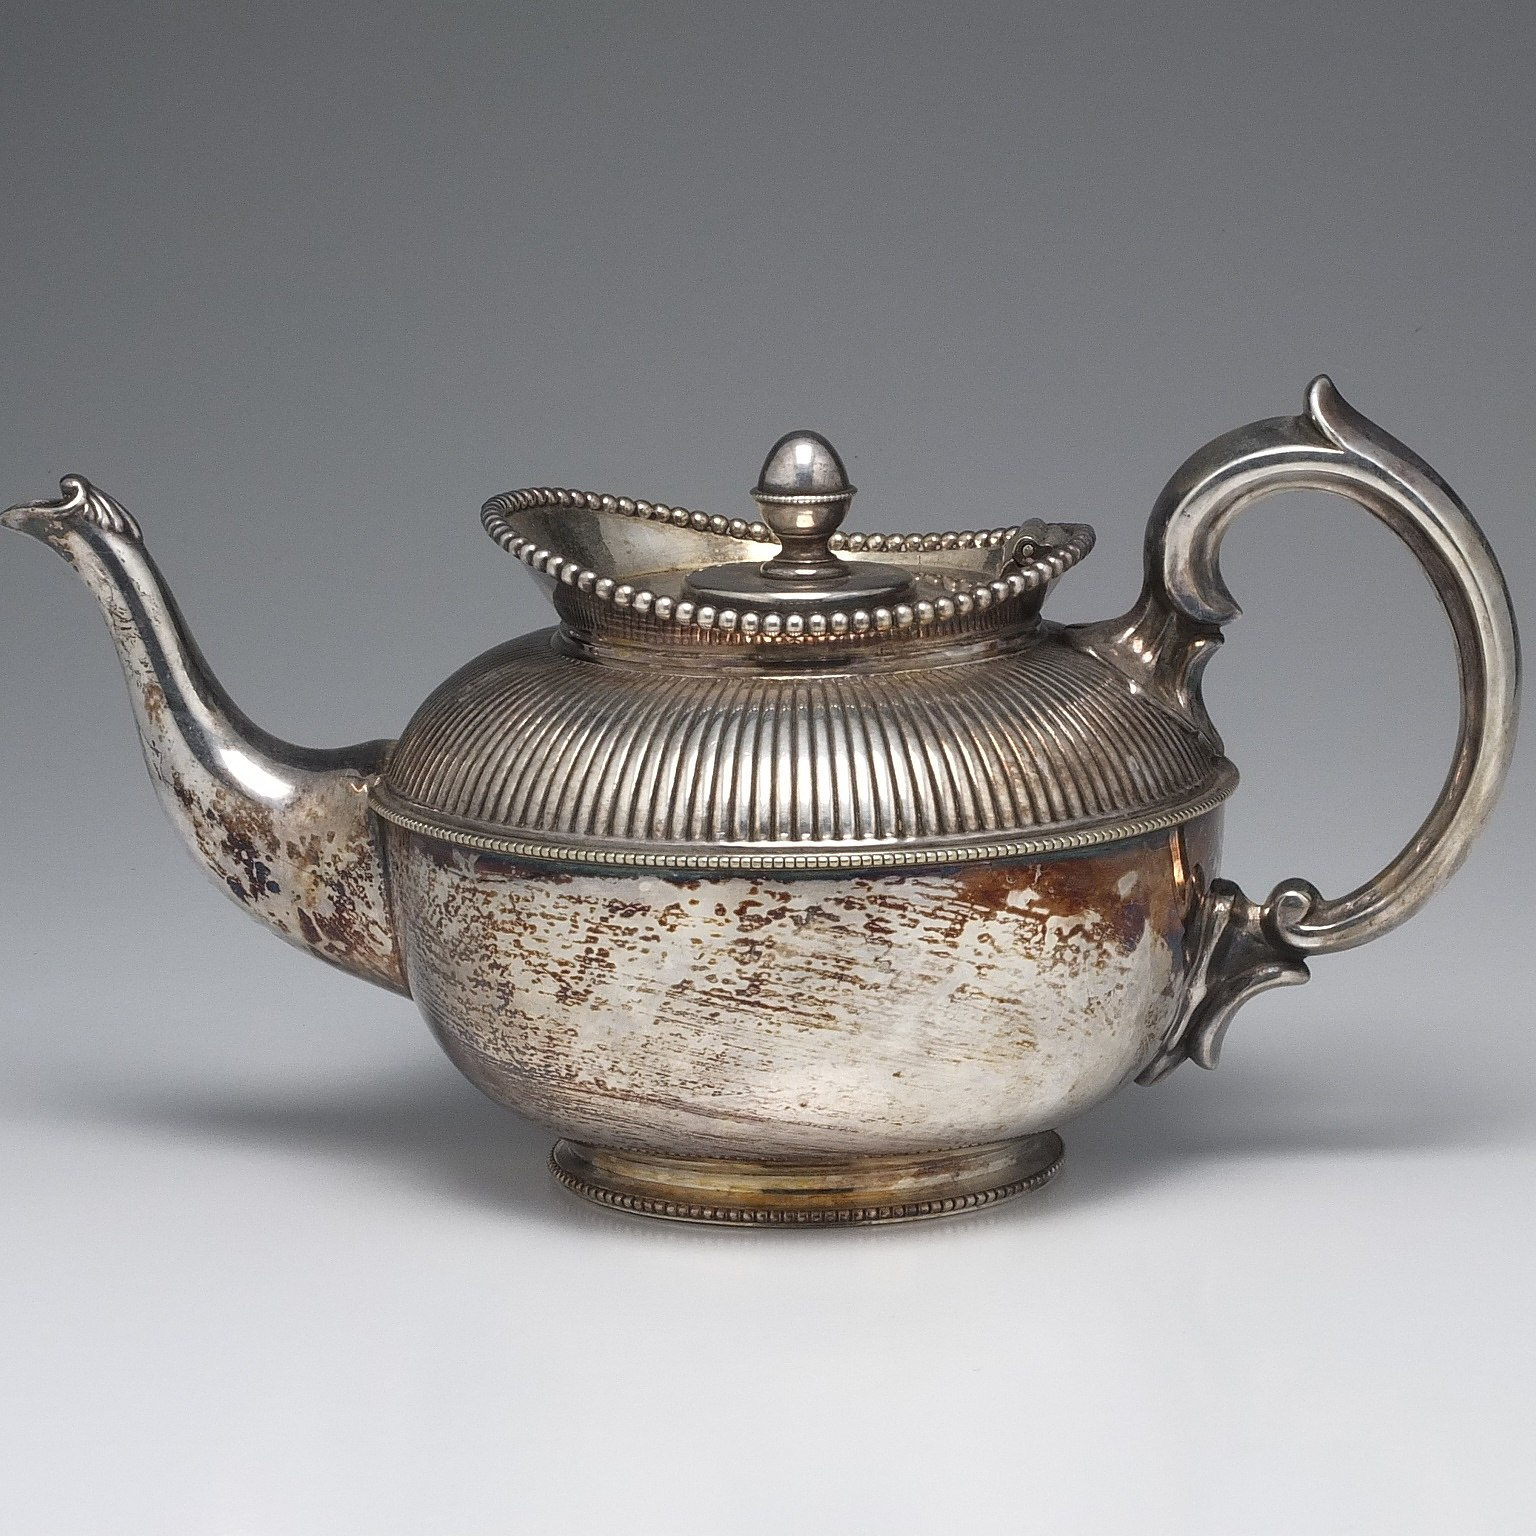 'Victorian Silver Plate Repousse and Chased Bachelors Teapot Circa 1875'